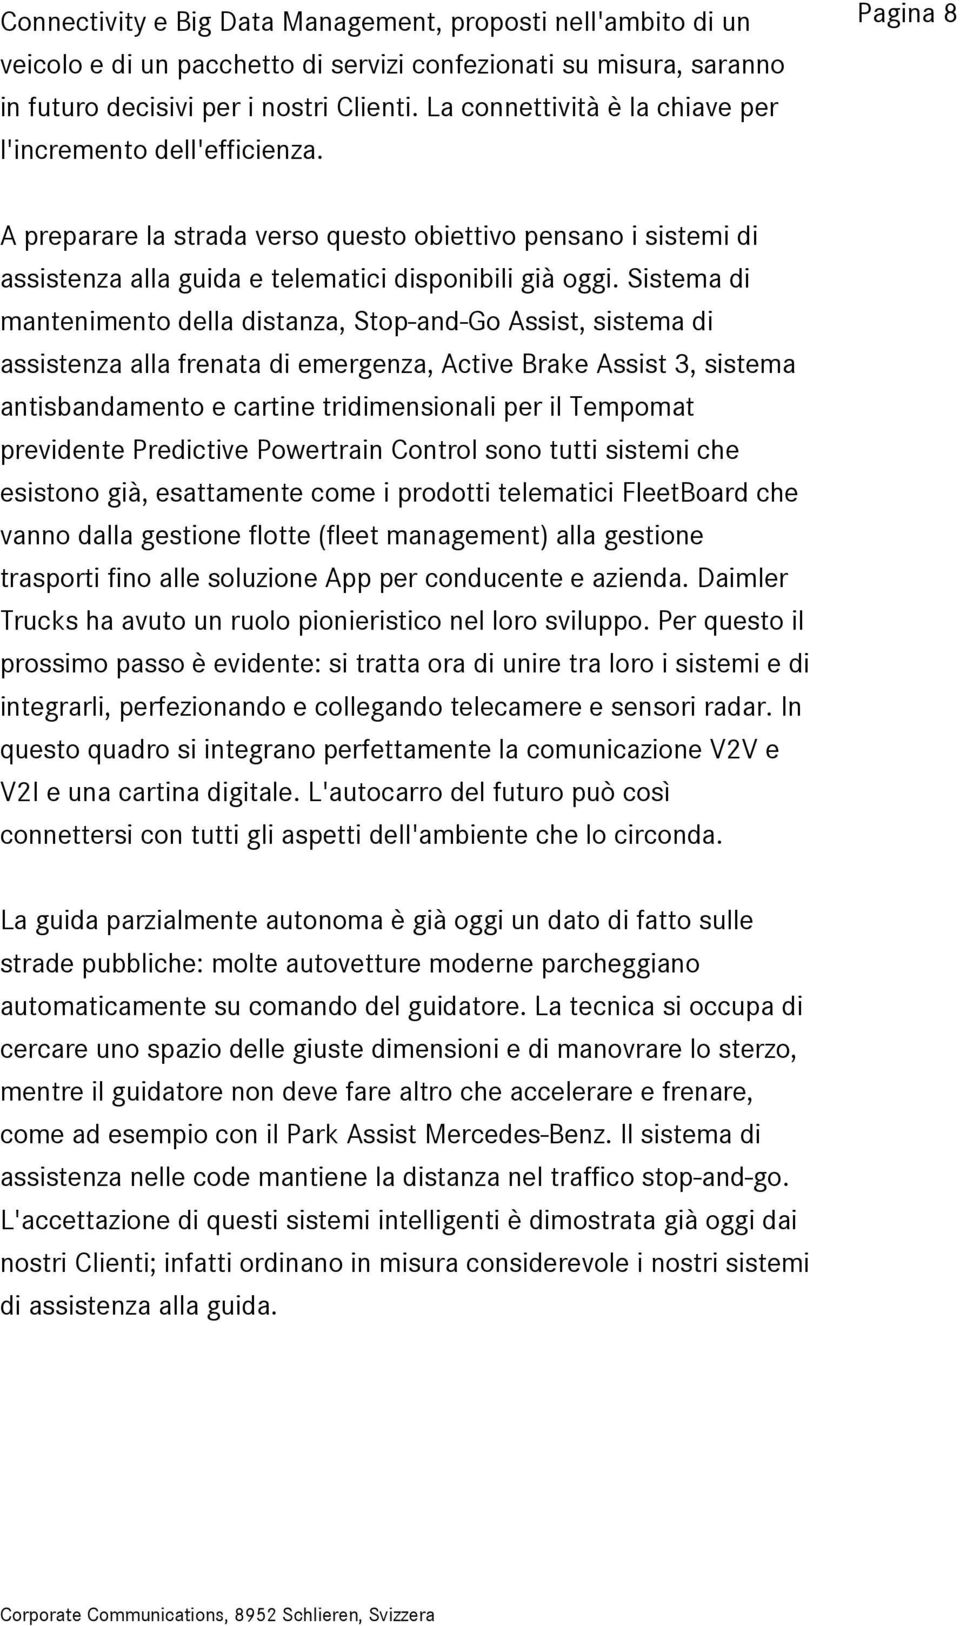 Sistema di mantenimento della distanza, Stop-and-Go Assist, sistema di assistenza alla frenata di emergenza, Active Brake Assist 3, sistema antisbandamento e cartine tridimensionali per il Tempomat